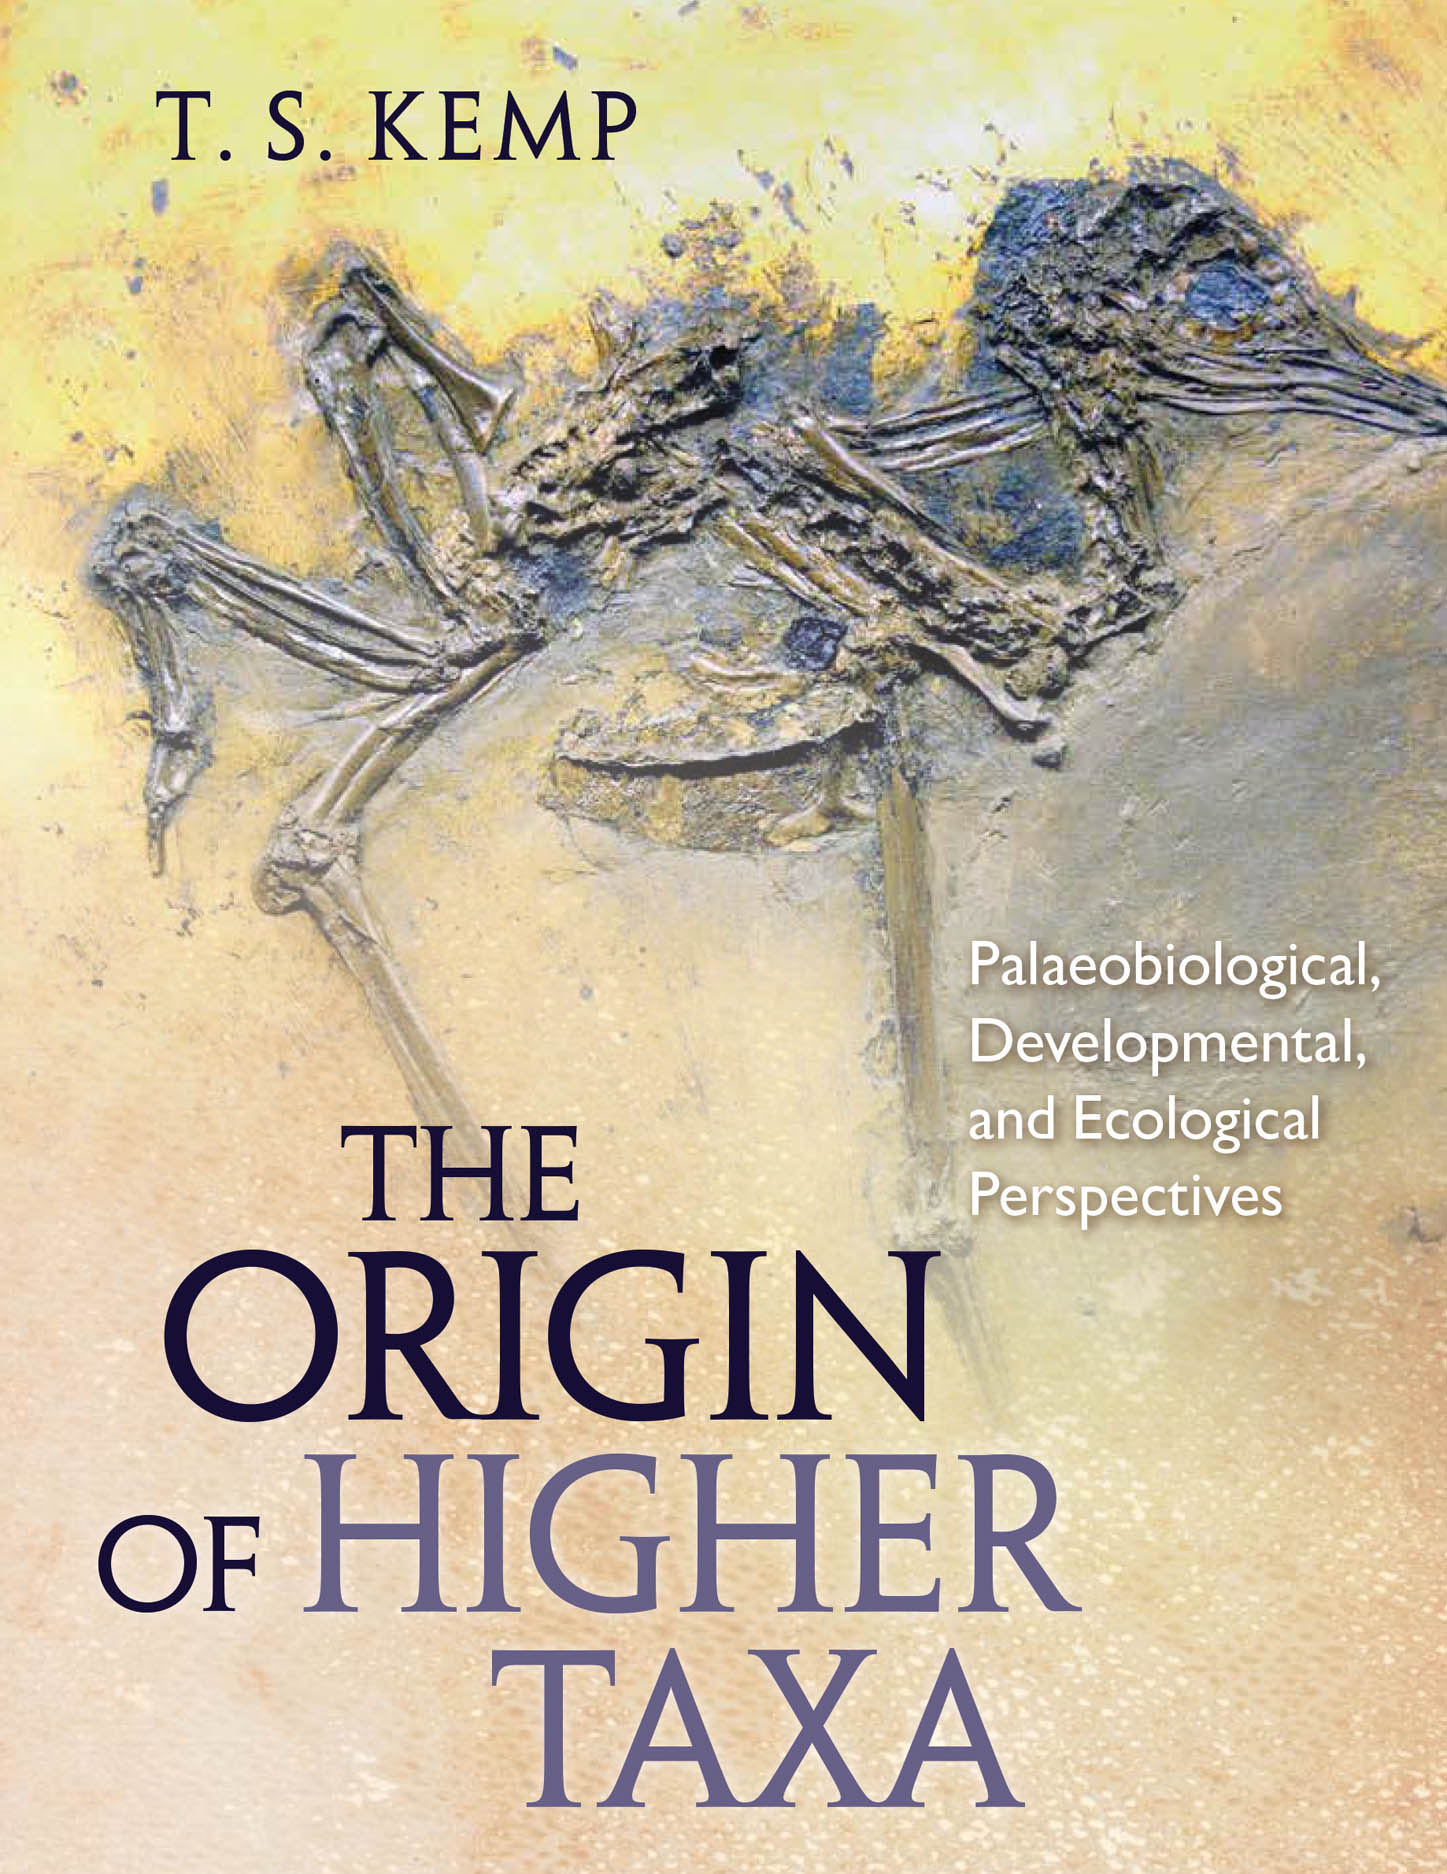 The Origin of Higher Taxa: Palaeobiological, Developmental, and Ecological Perspectives